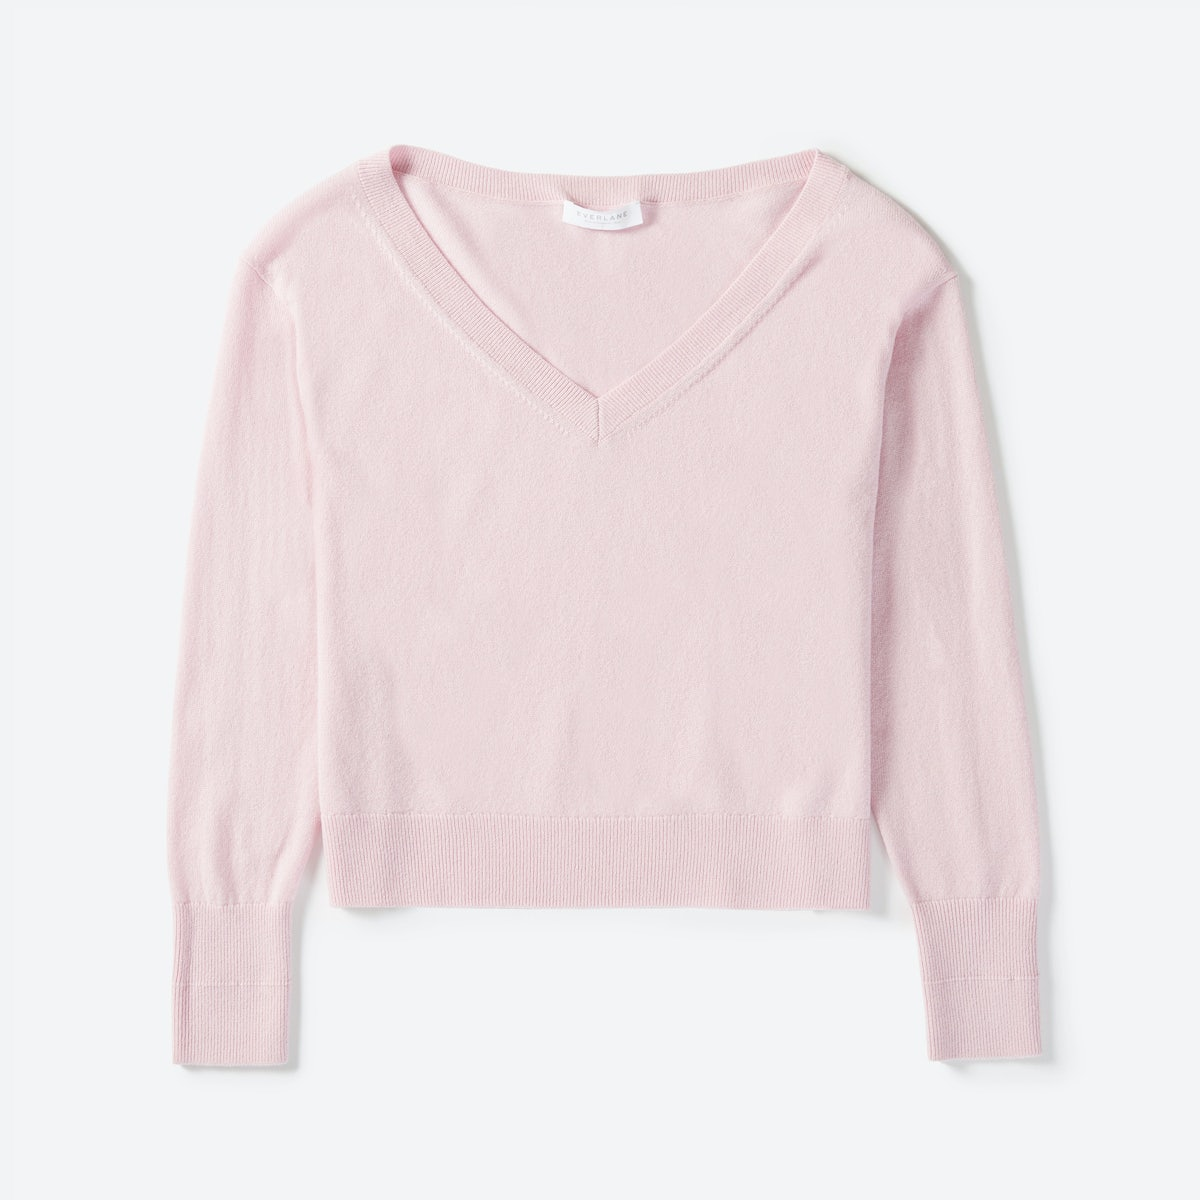 Women's Cashmere Crop V-Neck | Everlane